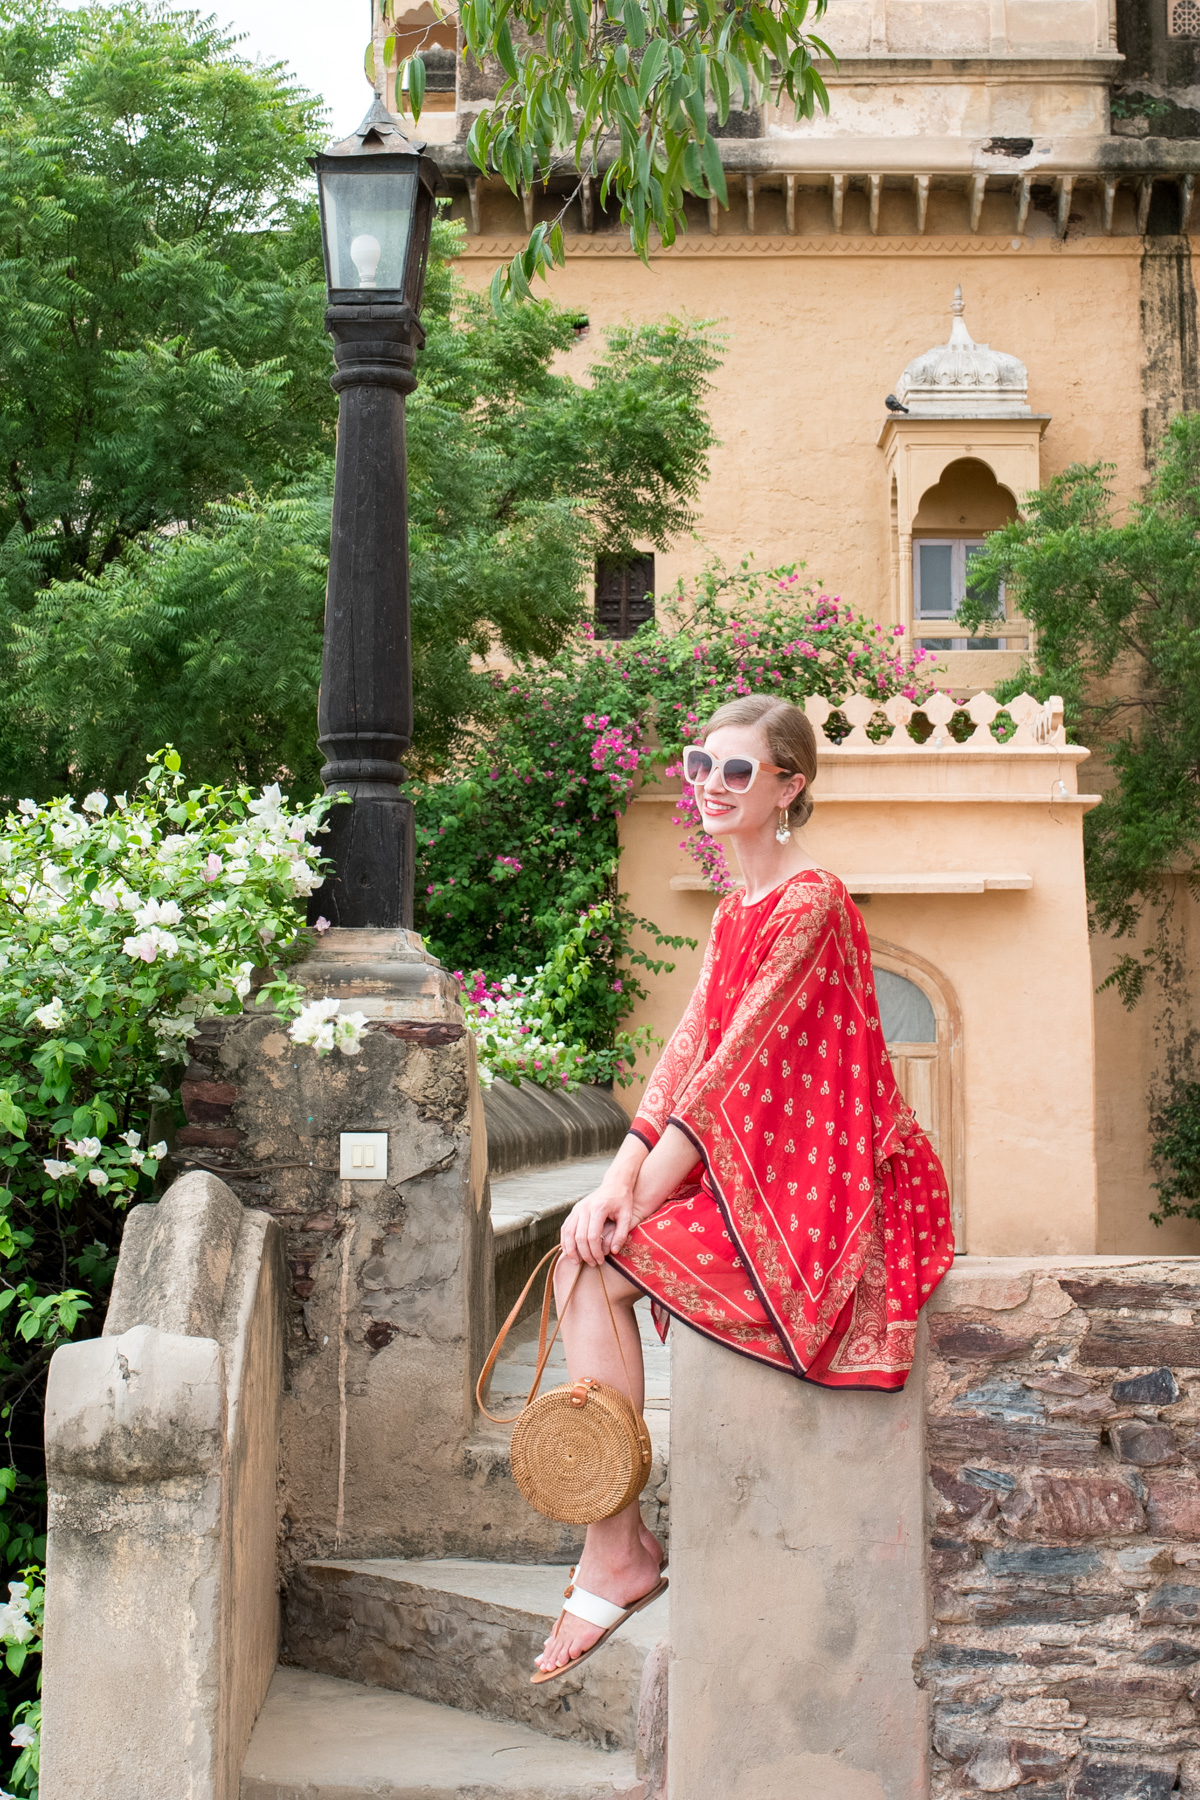 Stacie Flinner Neemrana Fort Palace India -20.jpg